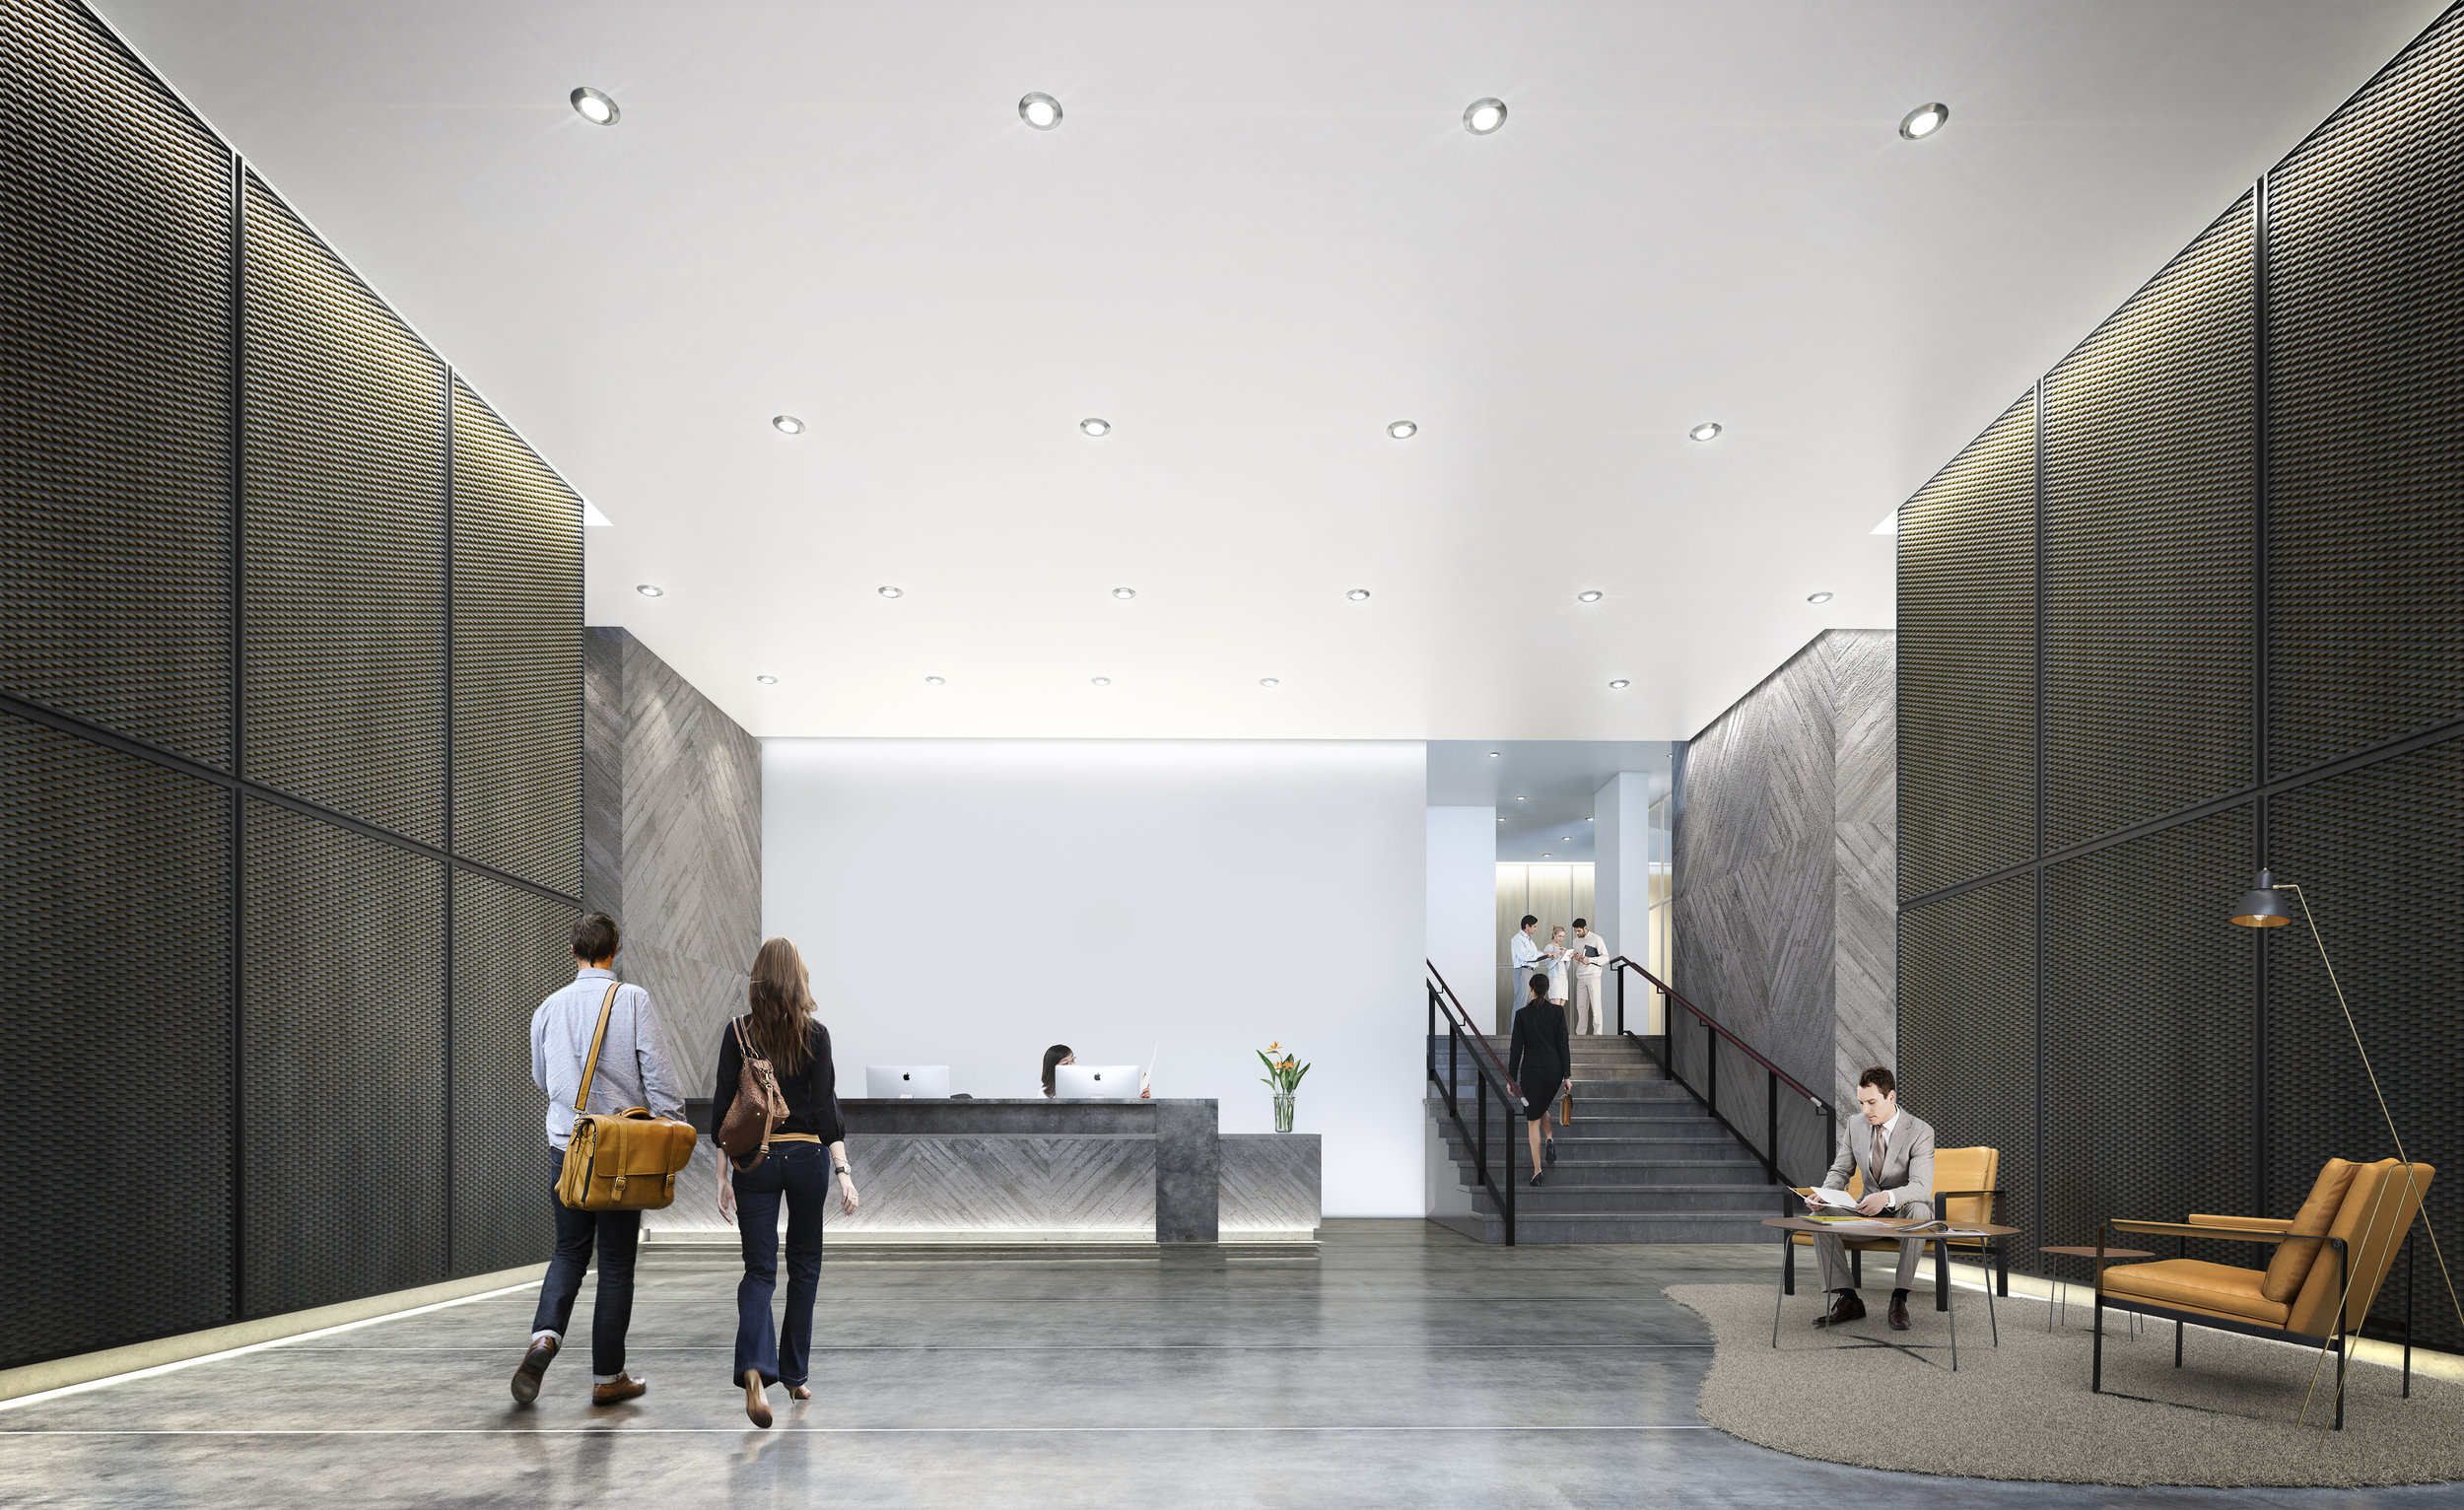 Cooper and southwark reception CGI